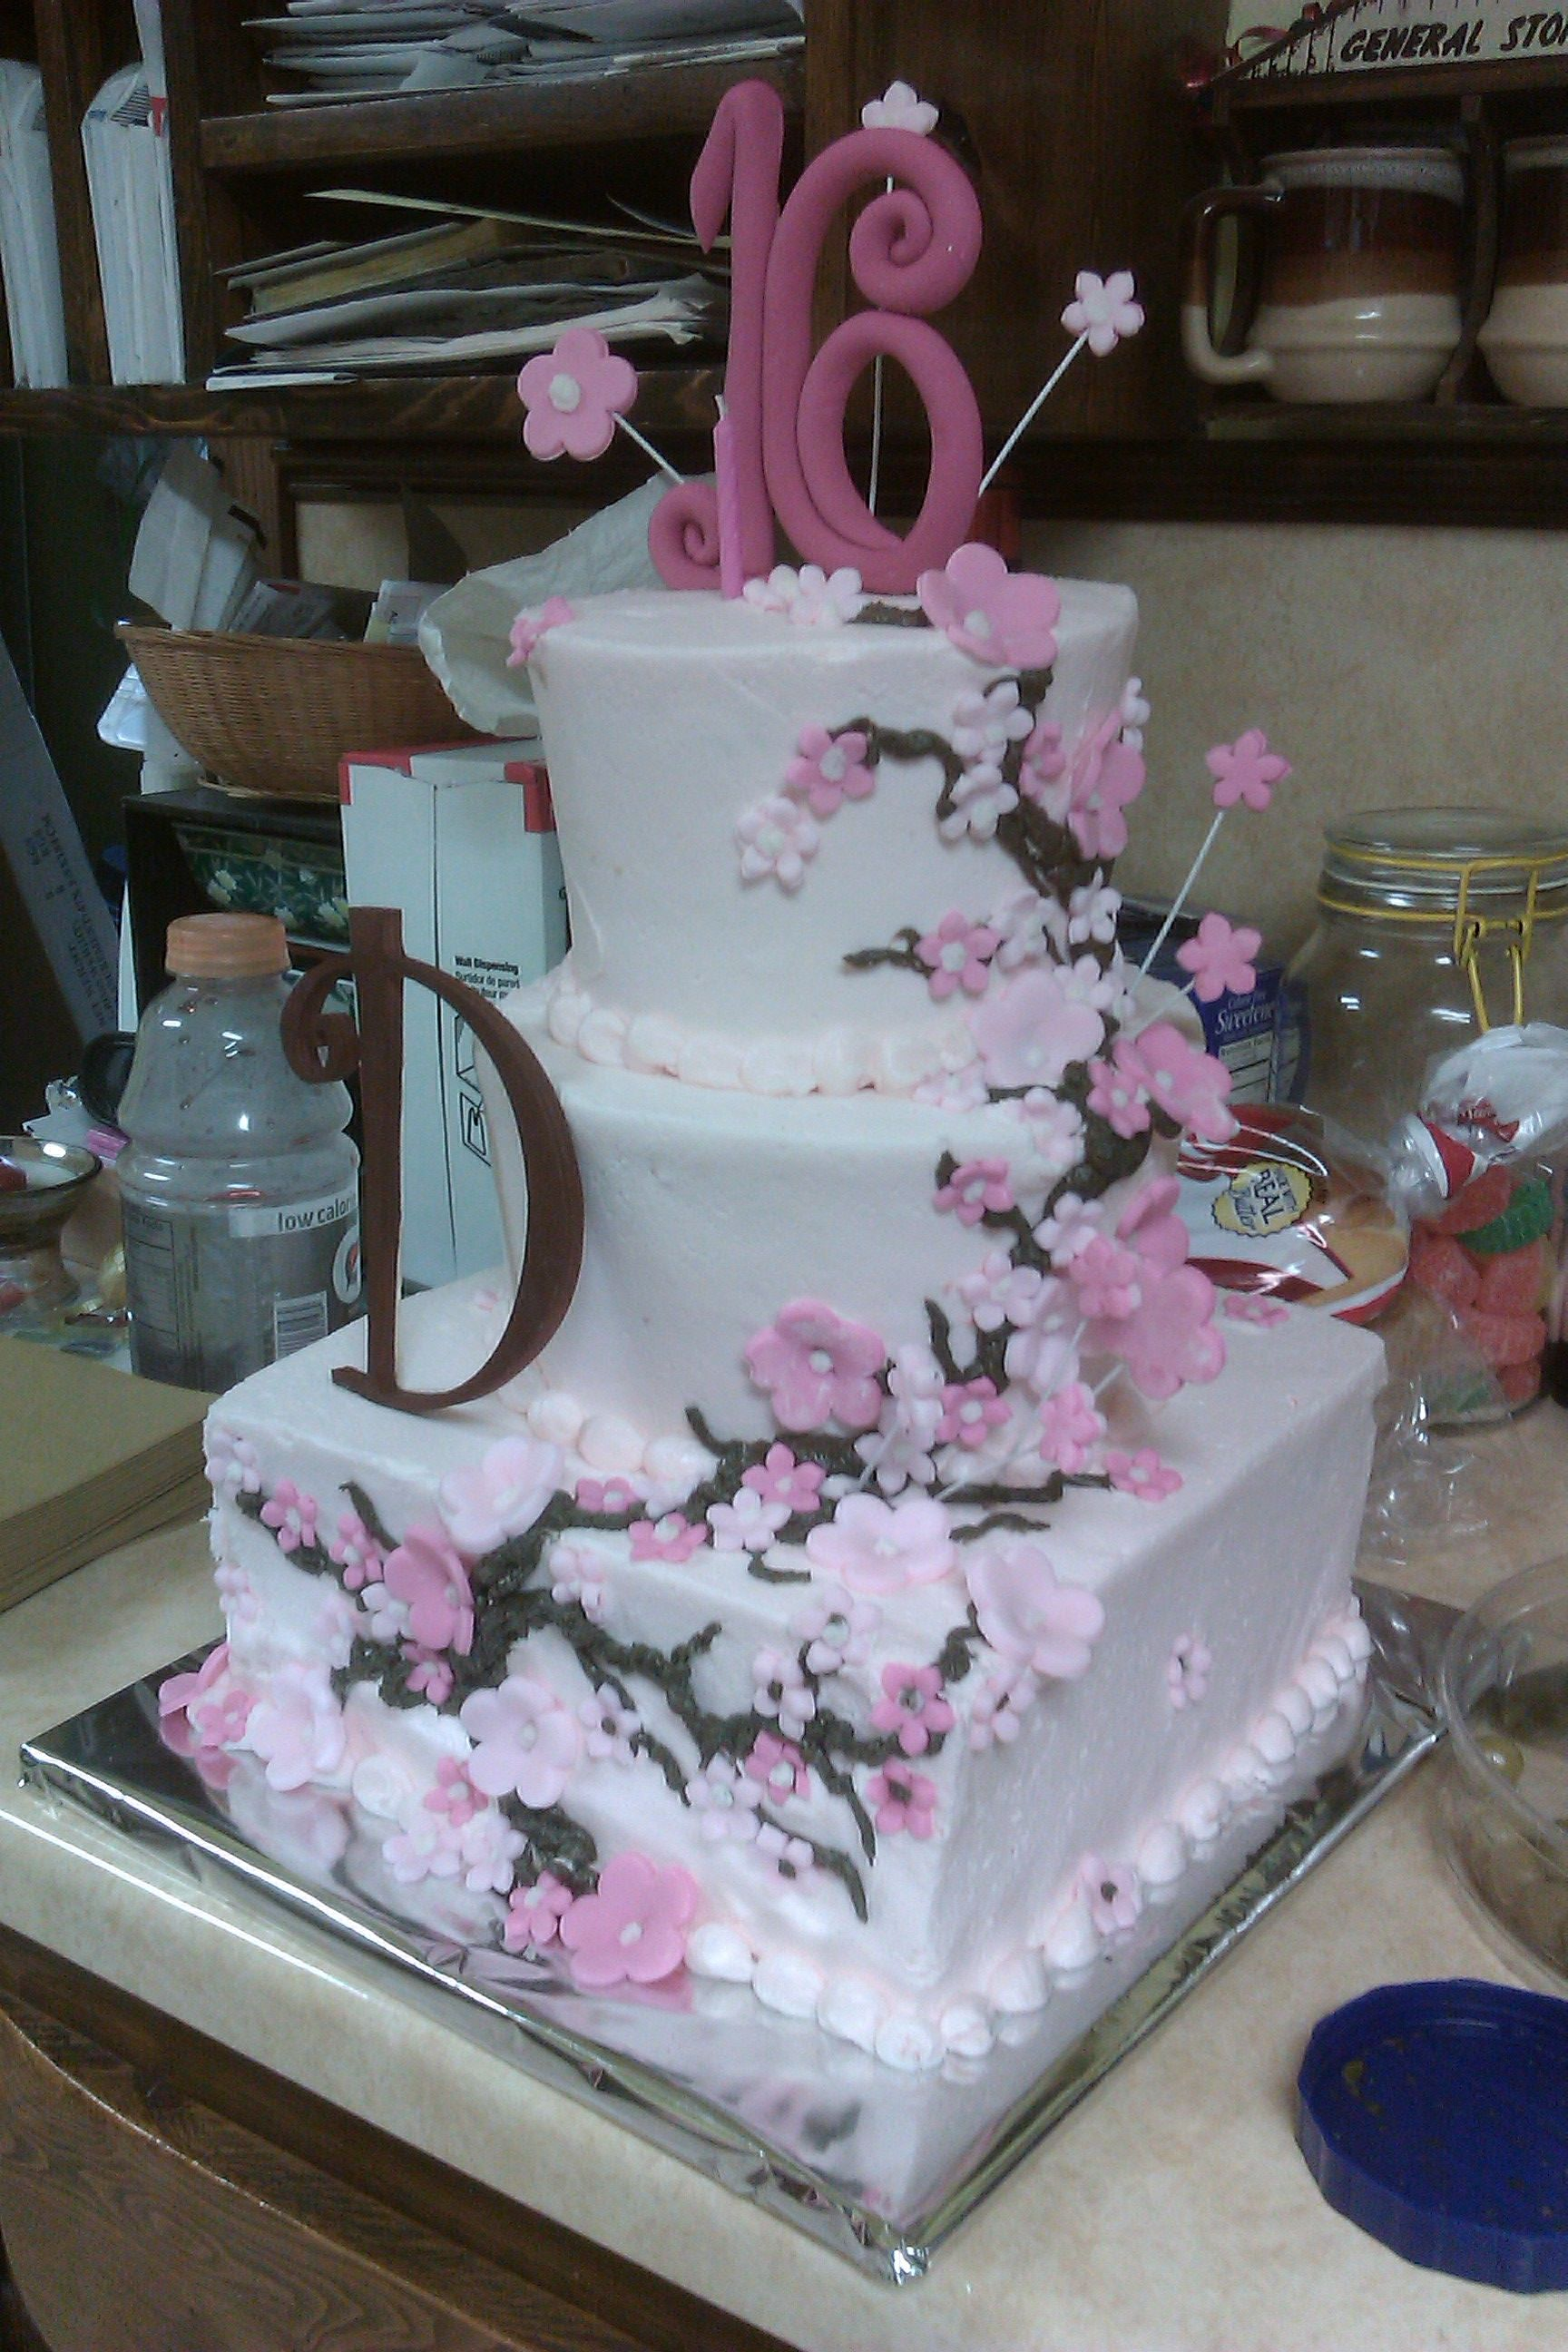 Dallas sweet 16 cake by aunt barbarashe seriously